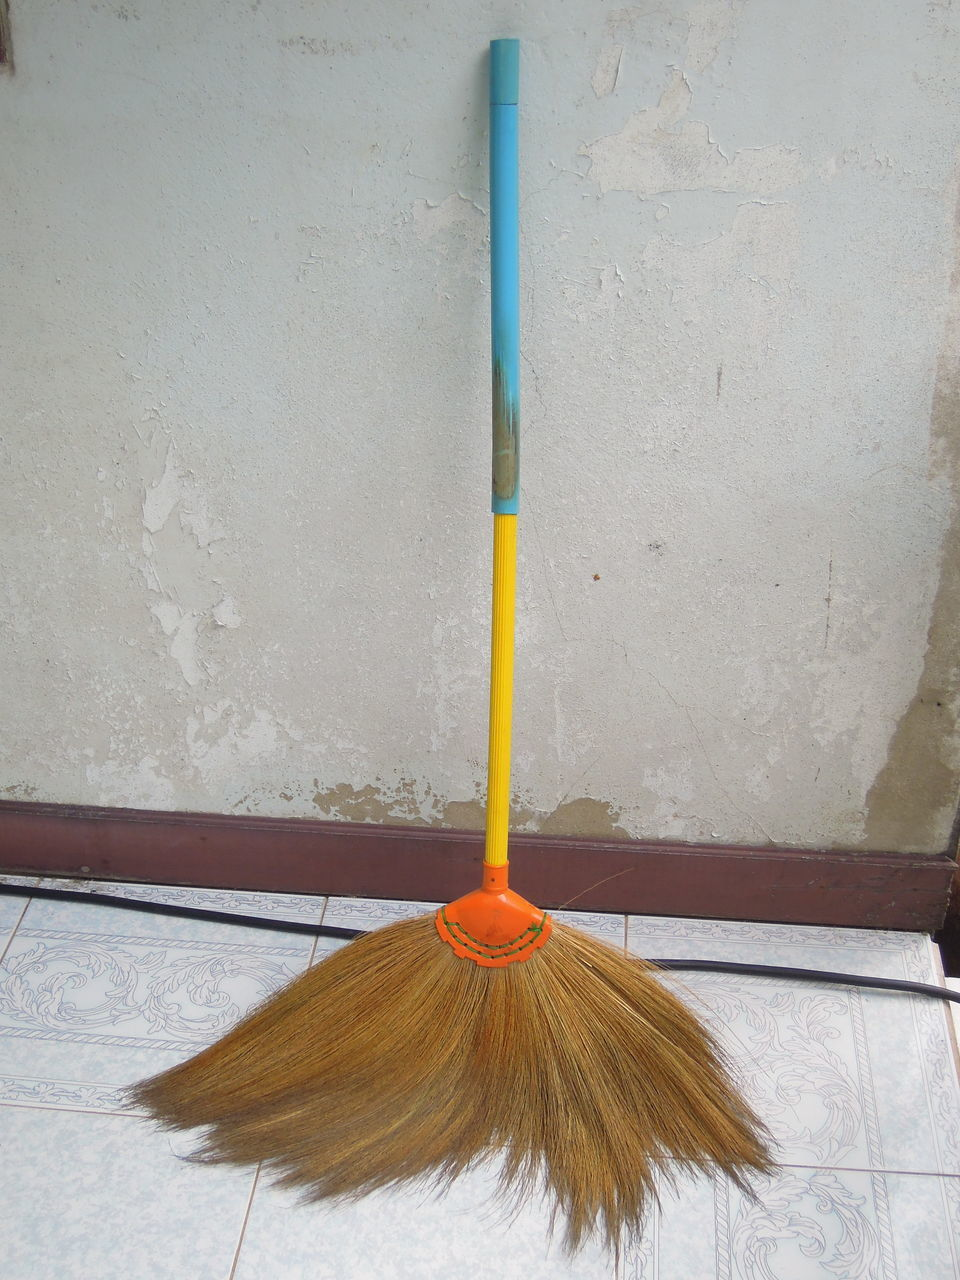 broom, cleaning, flooring, cleaning equipment, sweeping, indoors, mop, housework, built structure, no people, hygiene, day, architecture, close-up